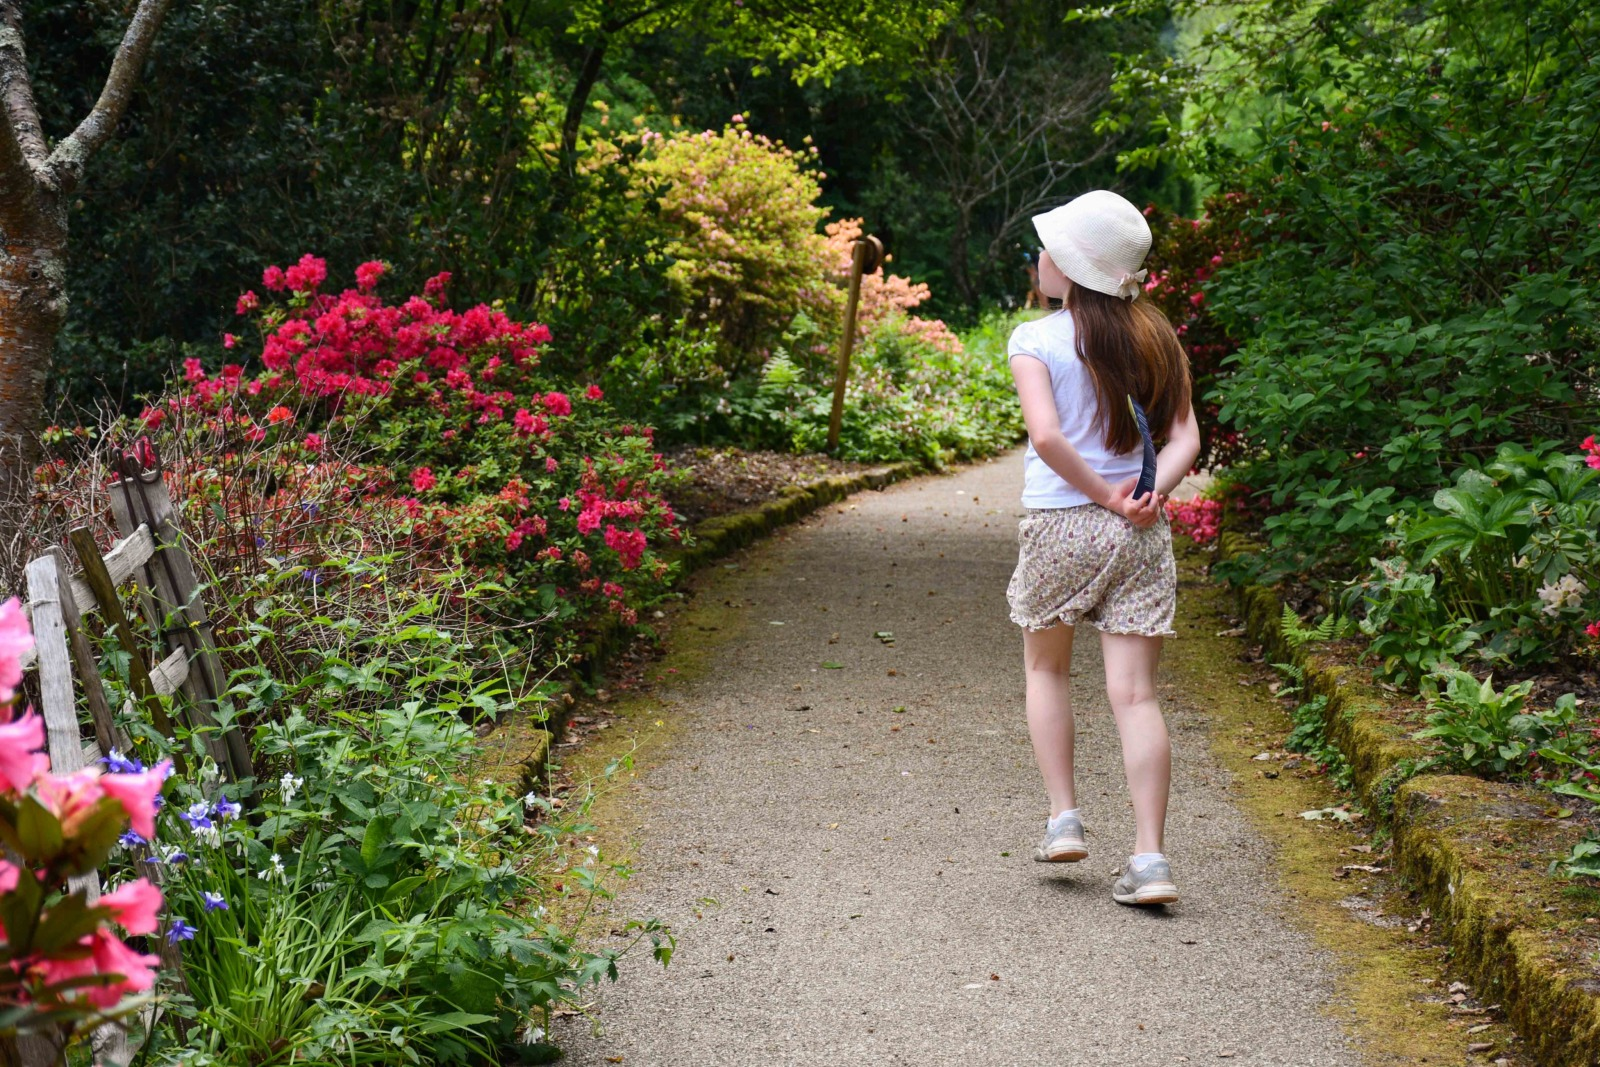 The gardens near Scotney House © French Moments